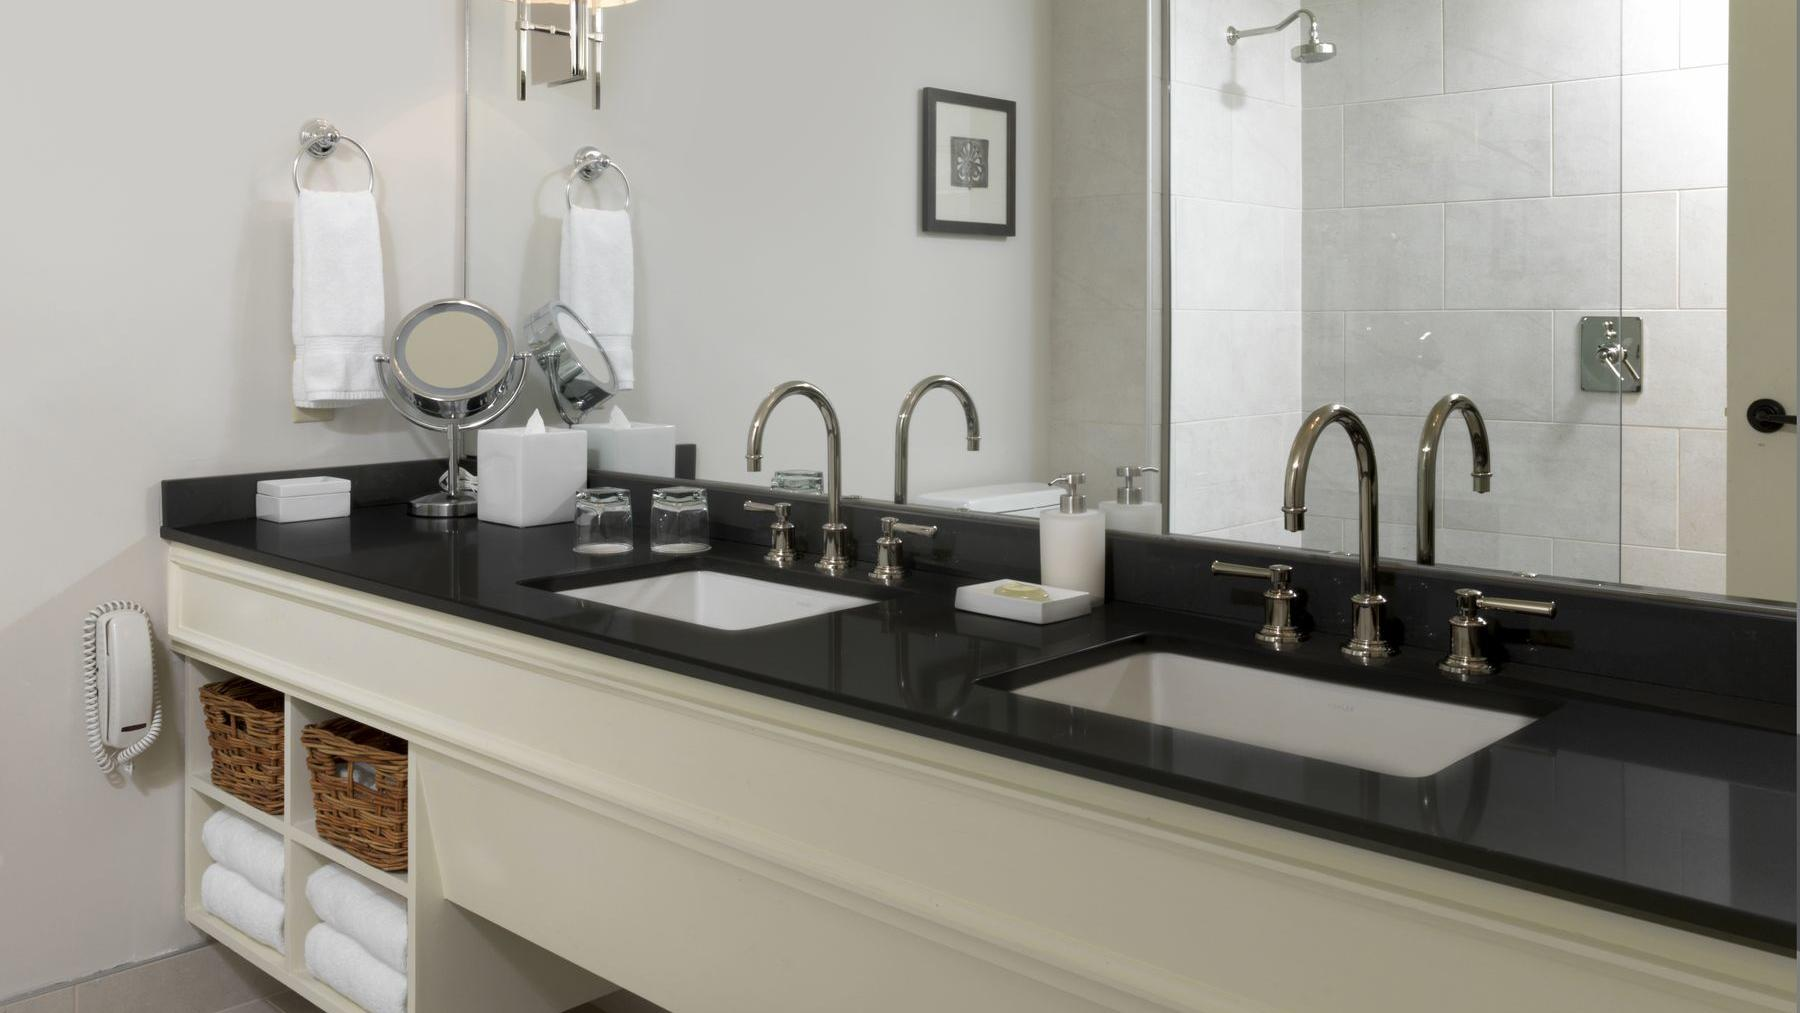 Hotel suite bathroom with two sinks.